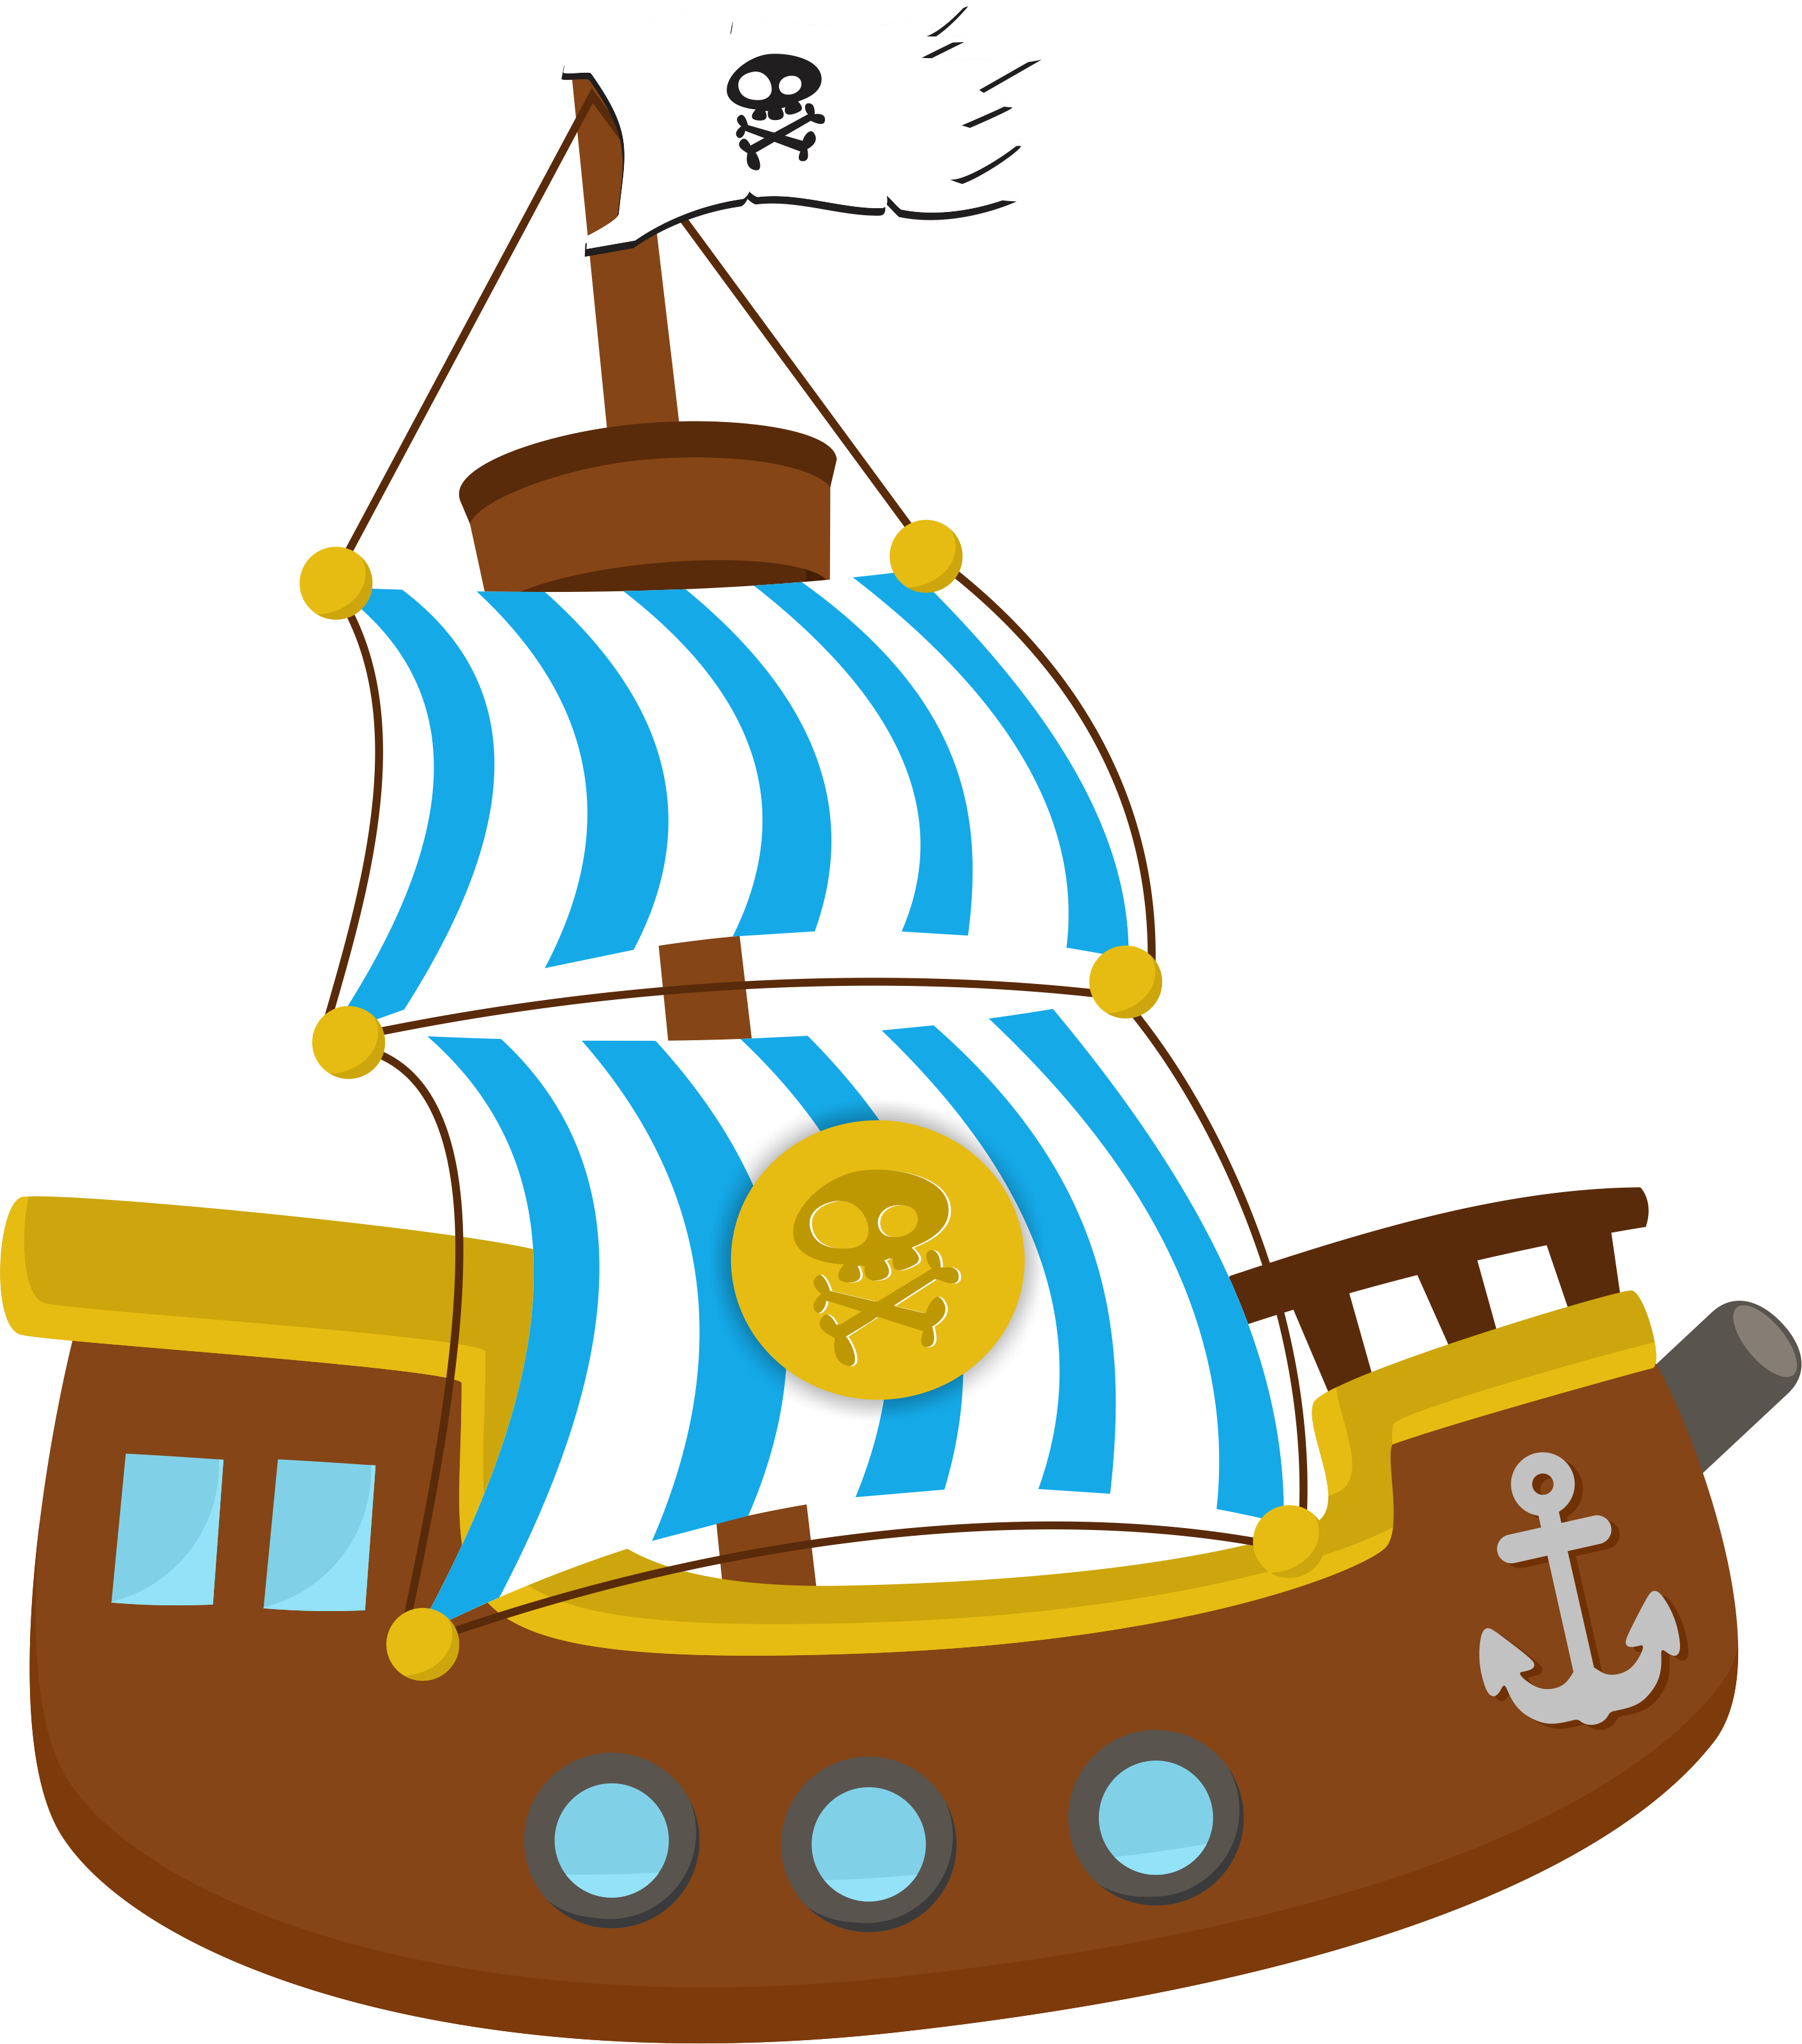 pirate ship clipart at getdrawings com free for personal use rh getdrawings com pirate ship cannon clipart pirate ship clipart png